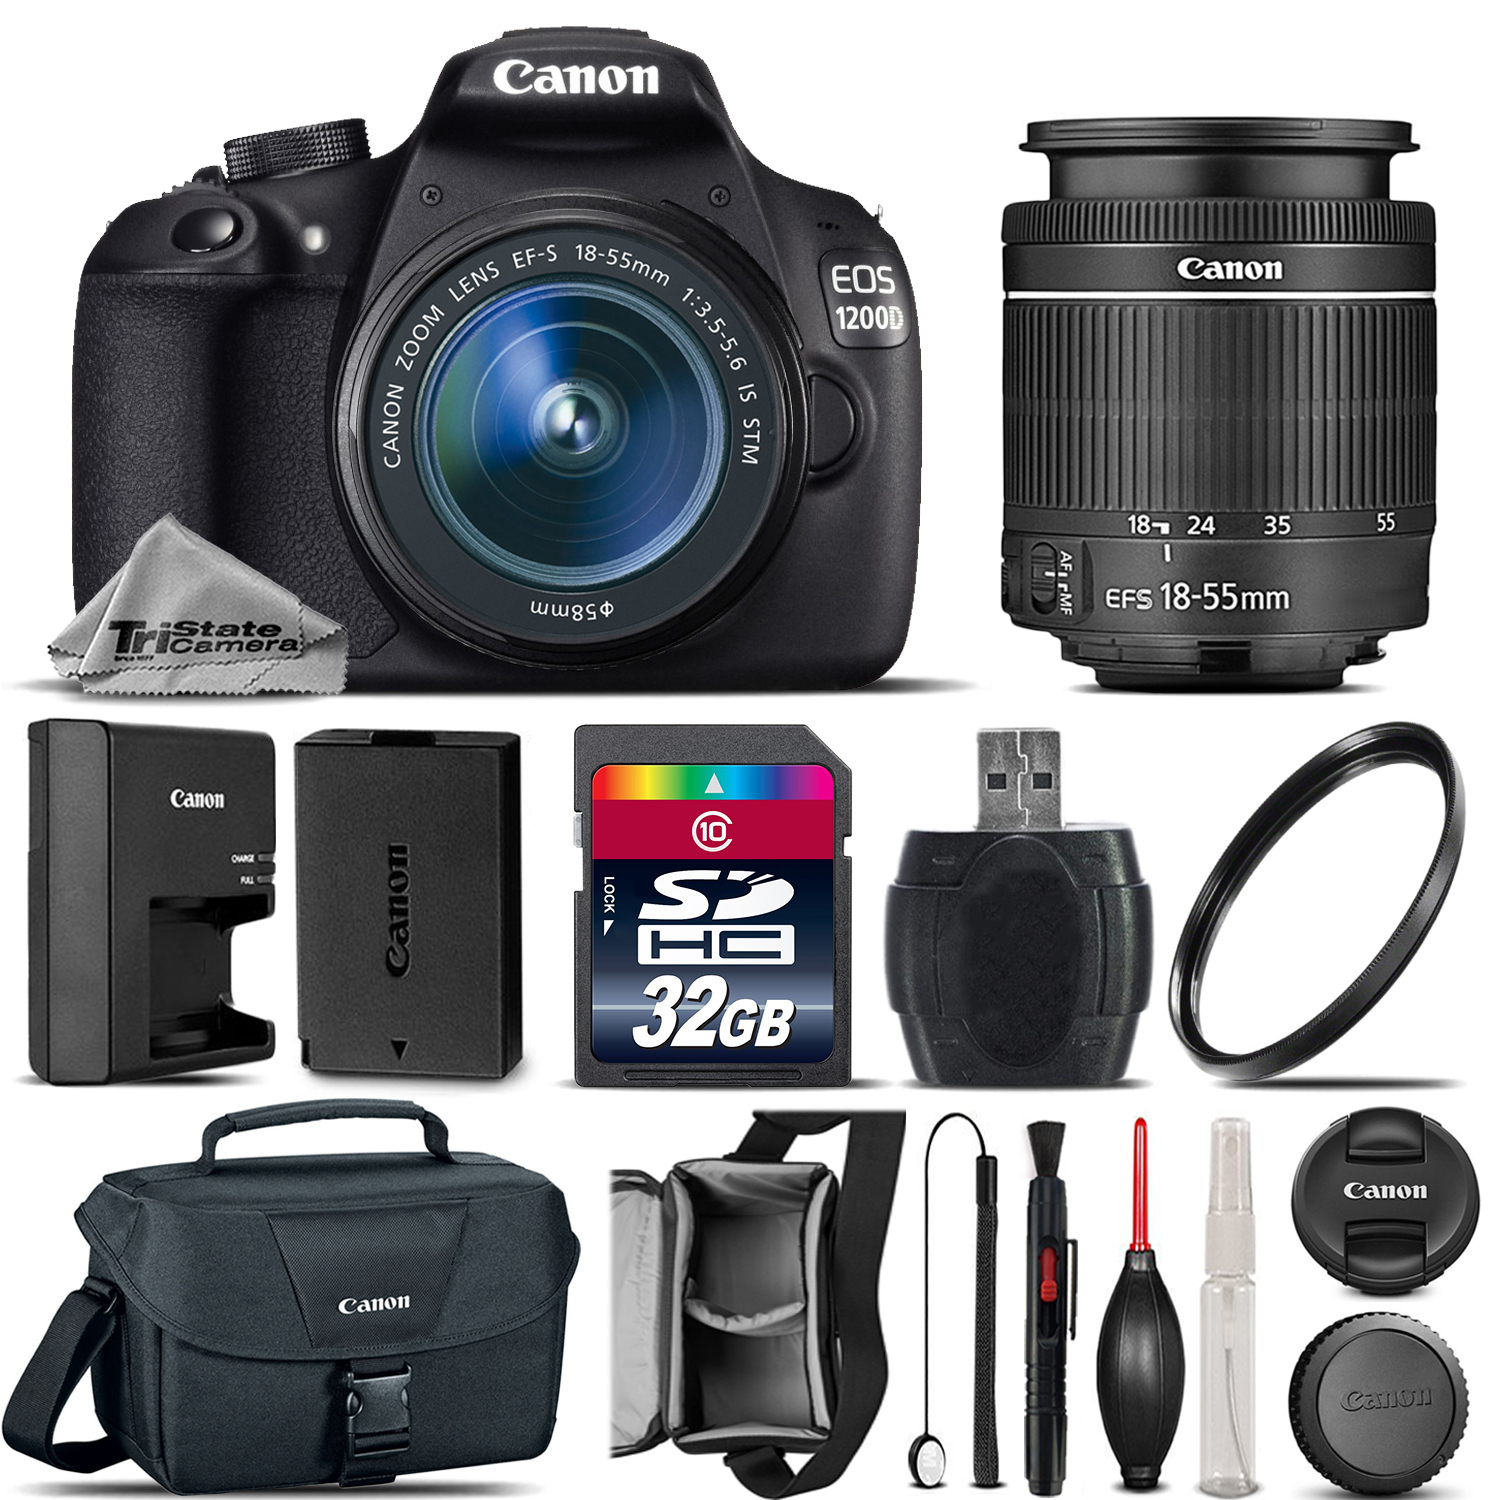 EOS Rebel 1200D /T5 Camera + 18-55mm IS STM Lens + Canon Case - 32GB Kit *FREE SHIPPING*